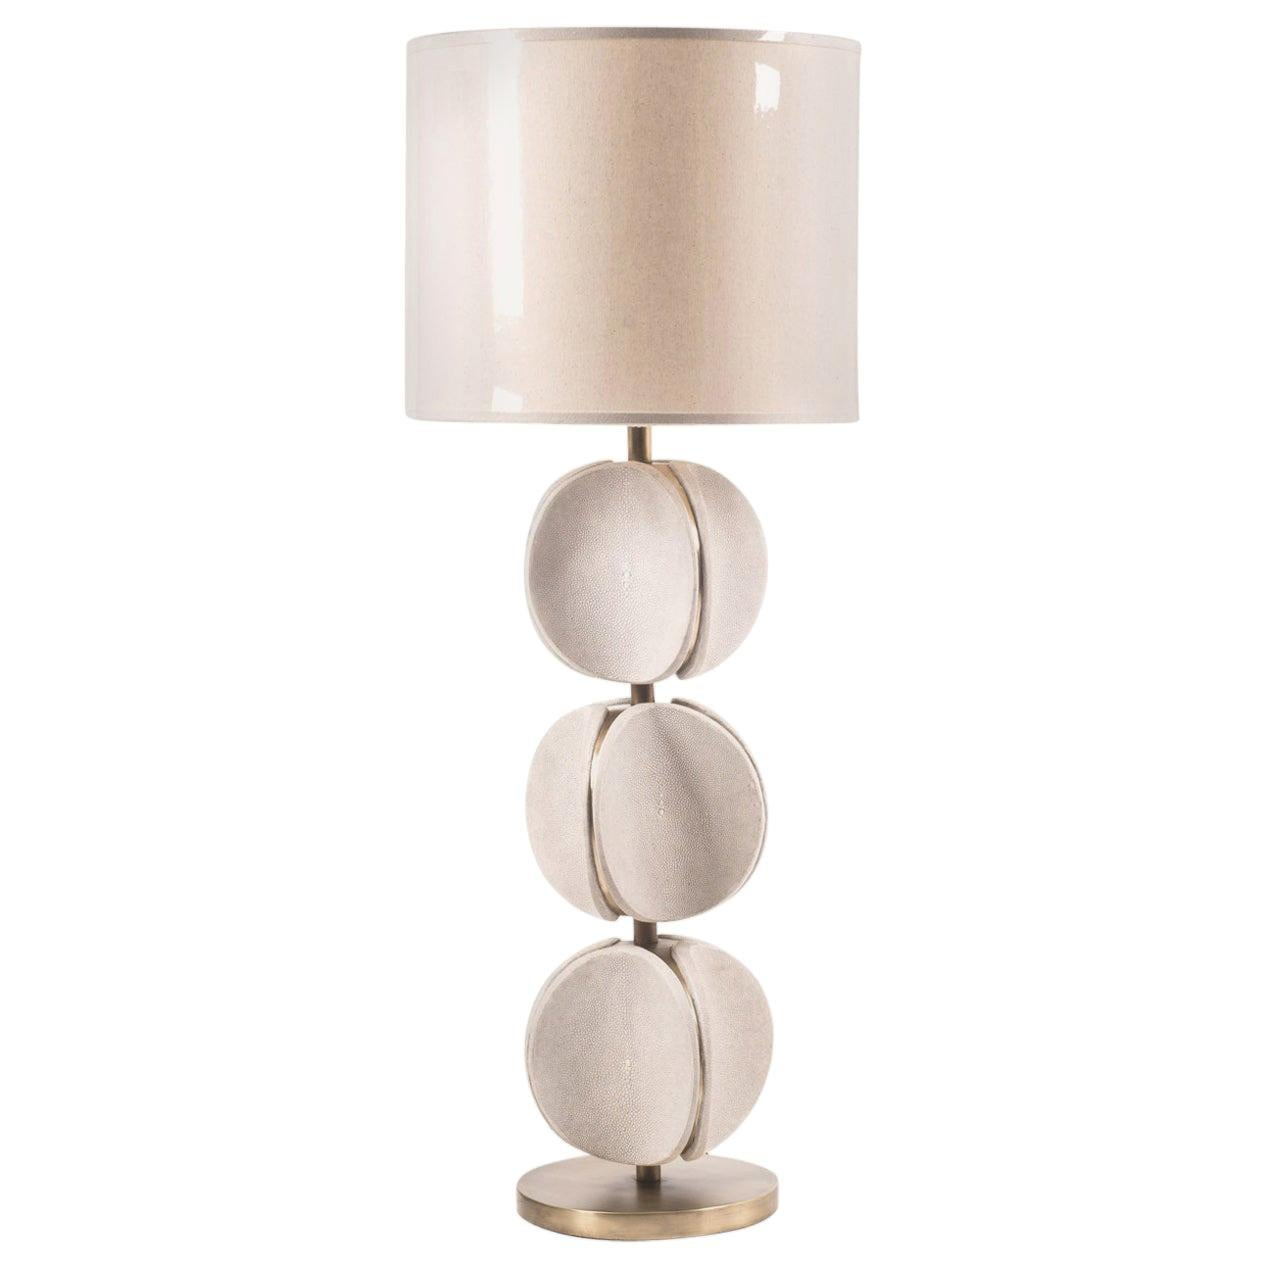 TOTEM Lamp in Cream Shagreen and Bronze-Patina Brass by Kifu Paris